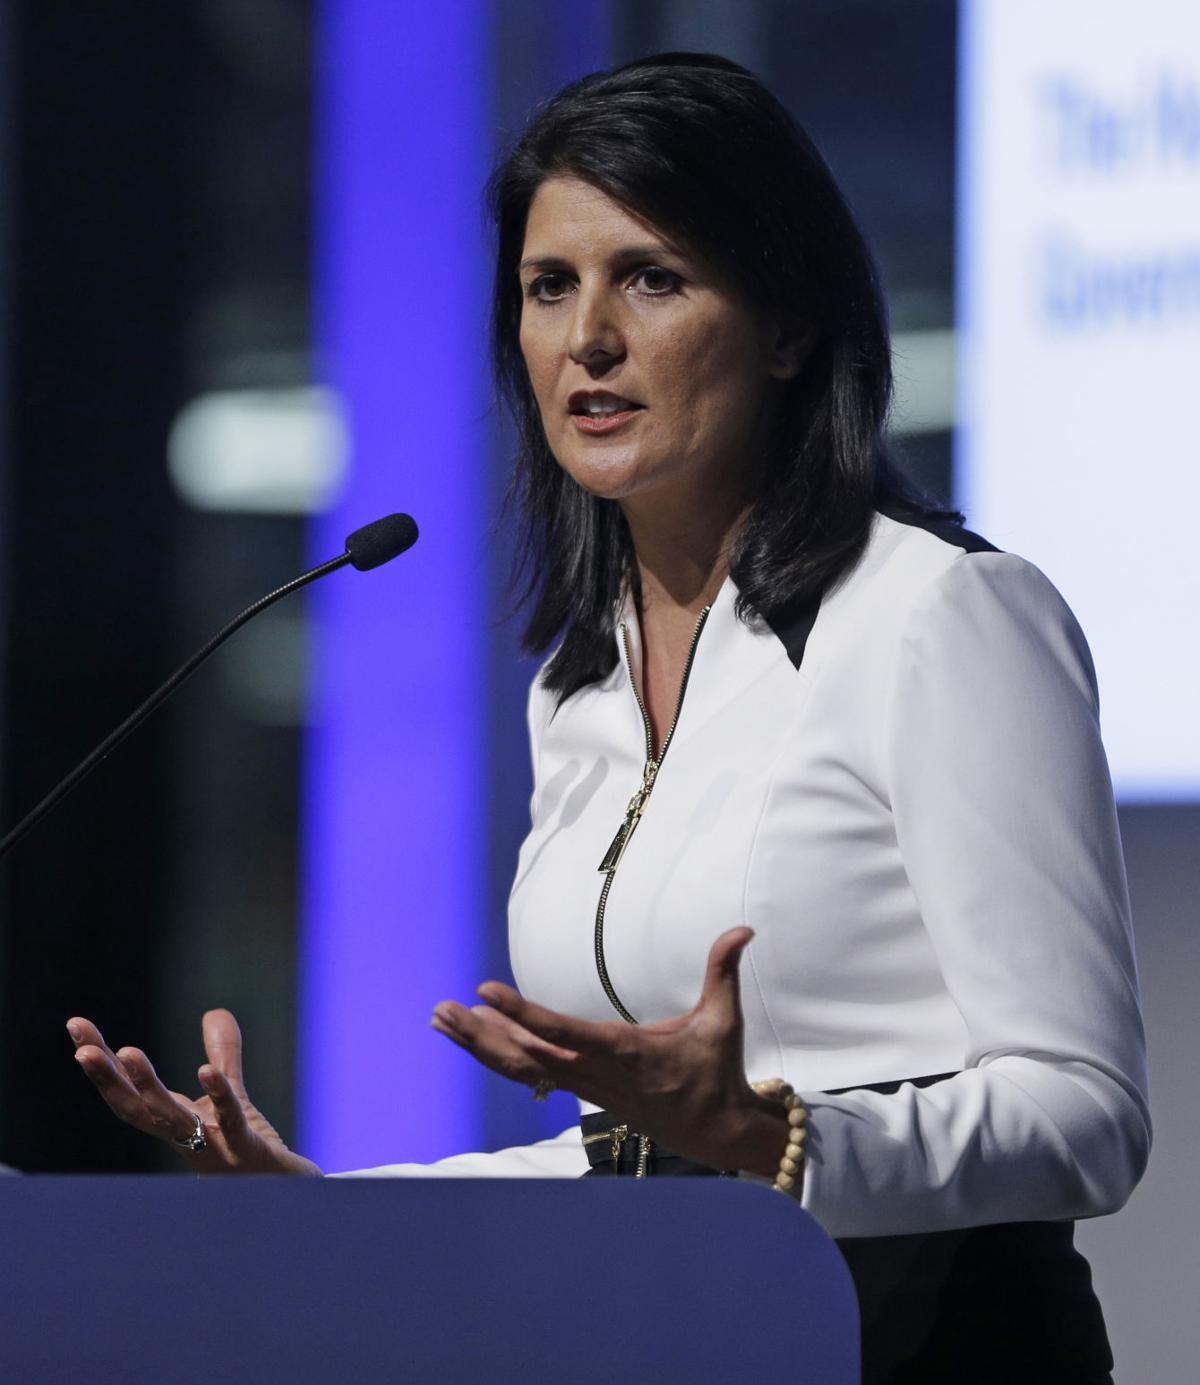 ACLU files records request on Gov. Haley's involvement in Saturday's prayer rally